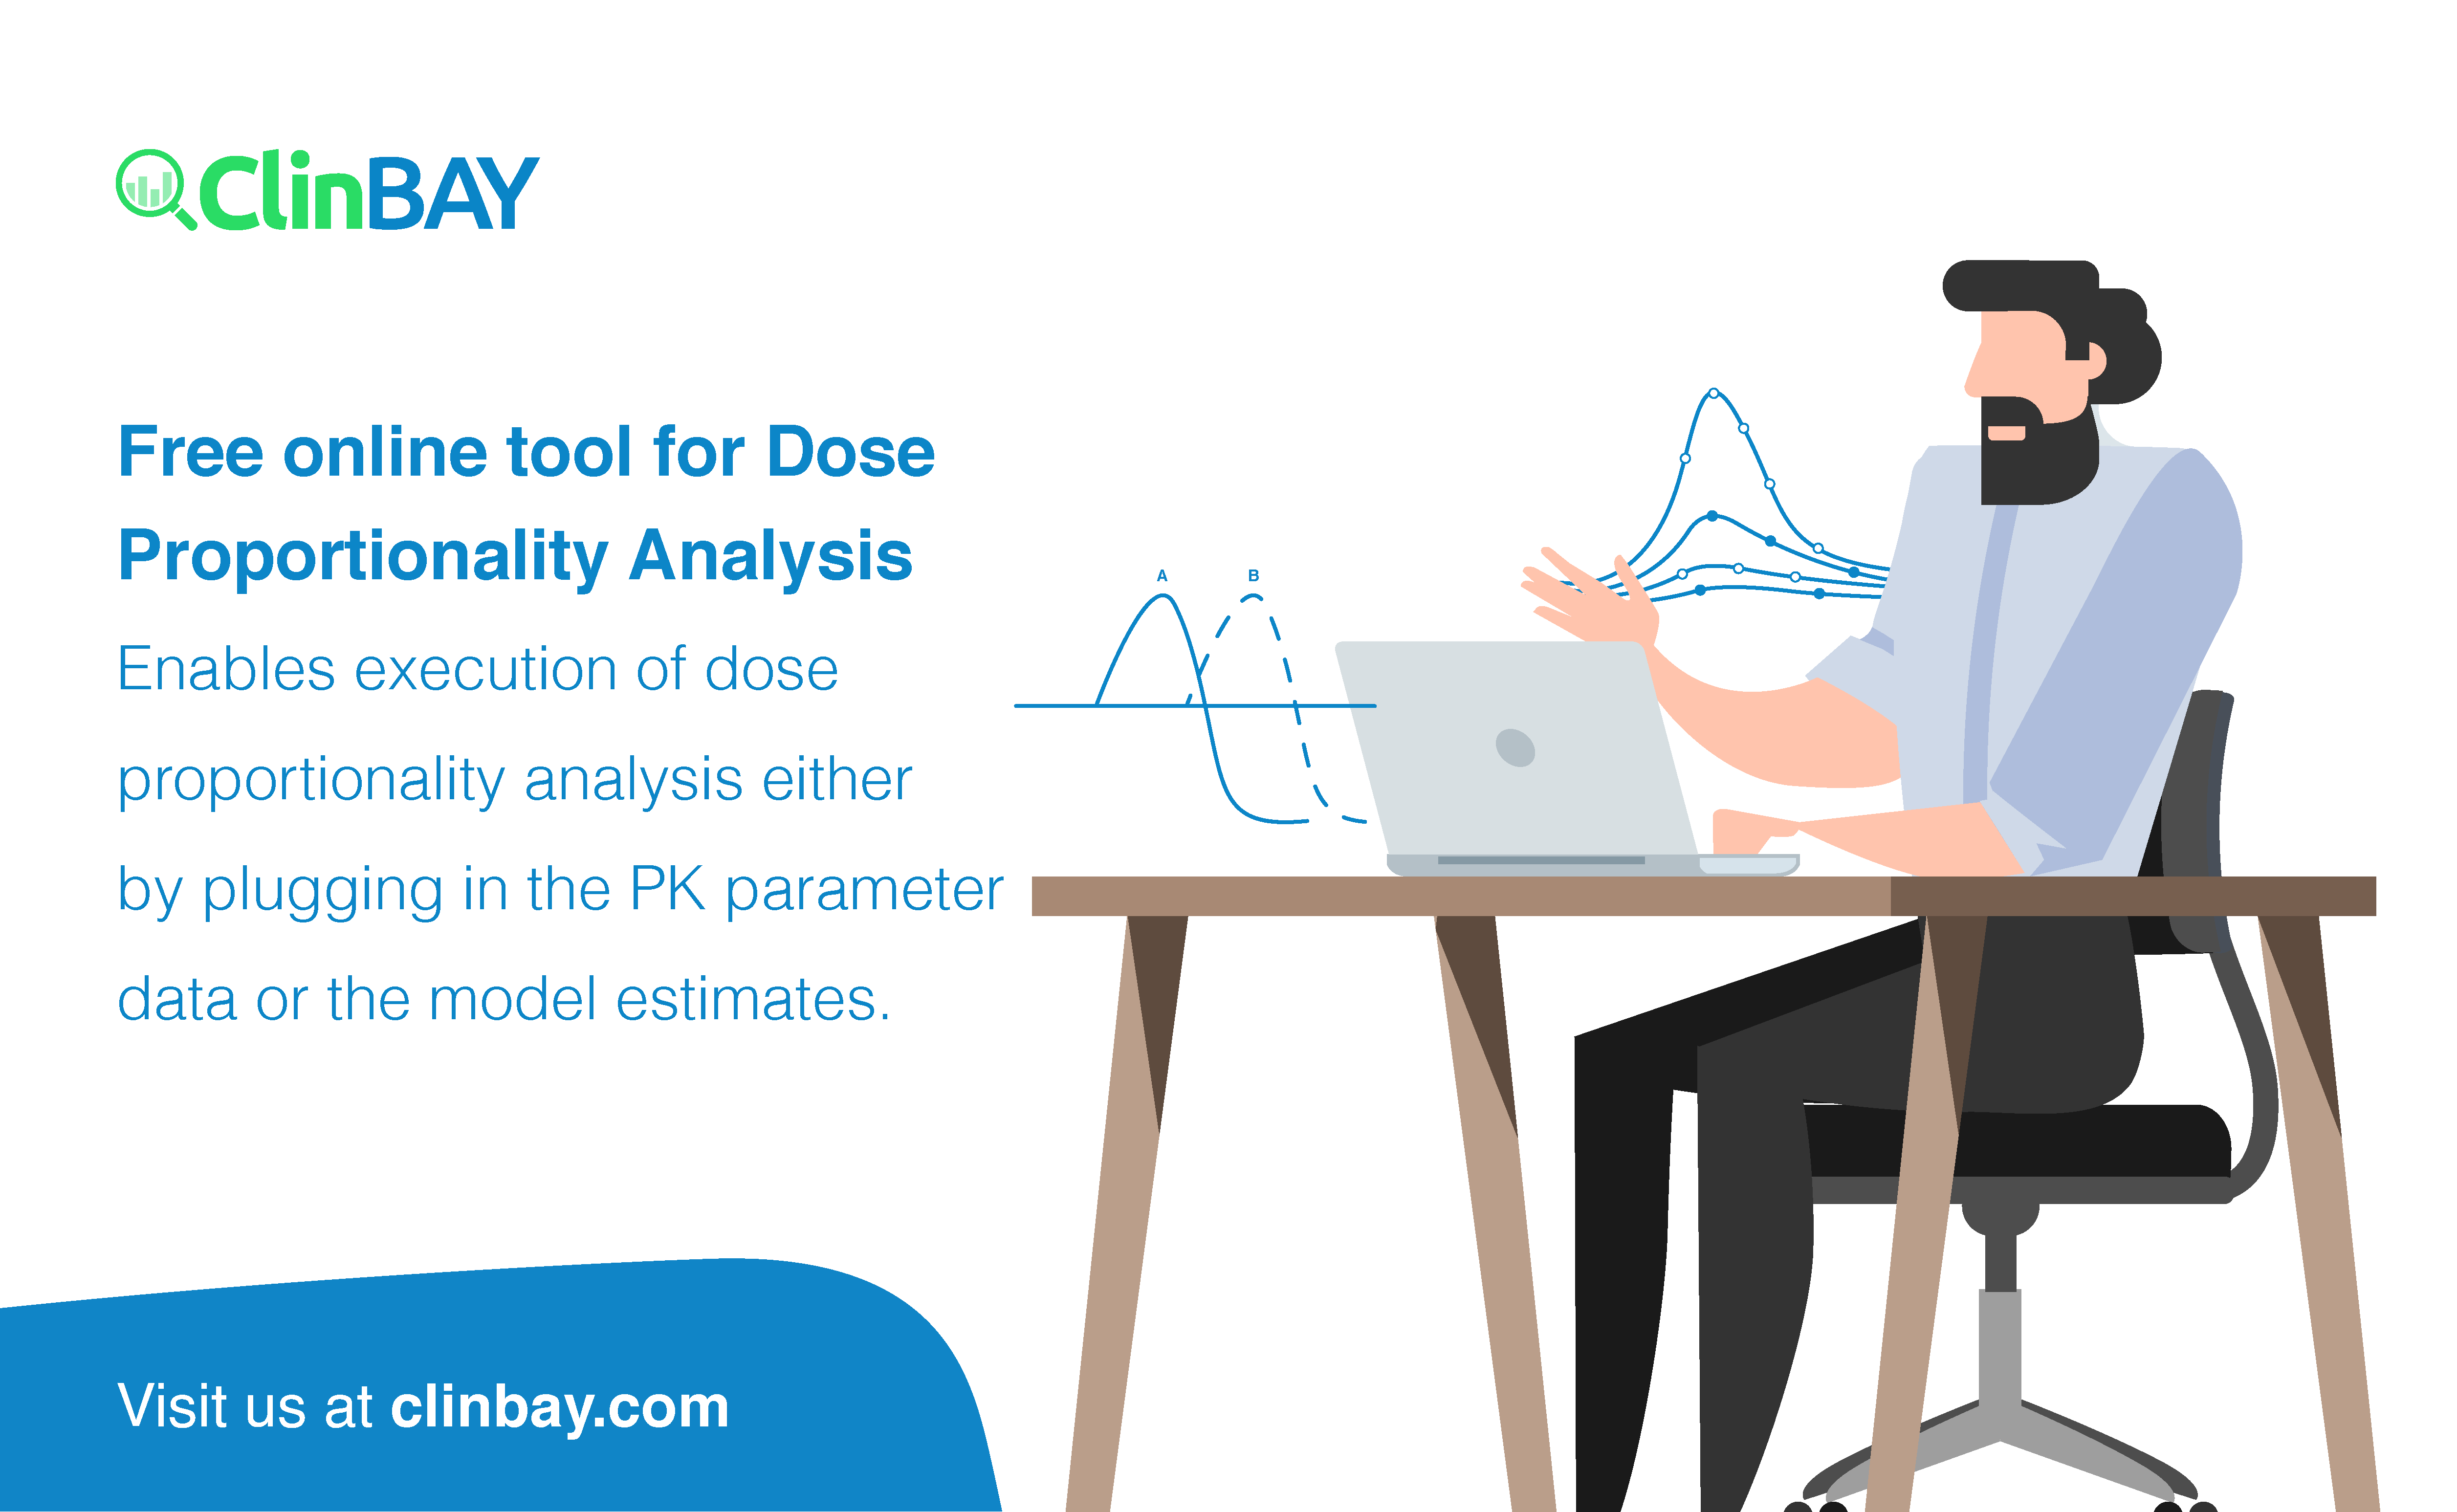 Dose proportionality analysis